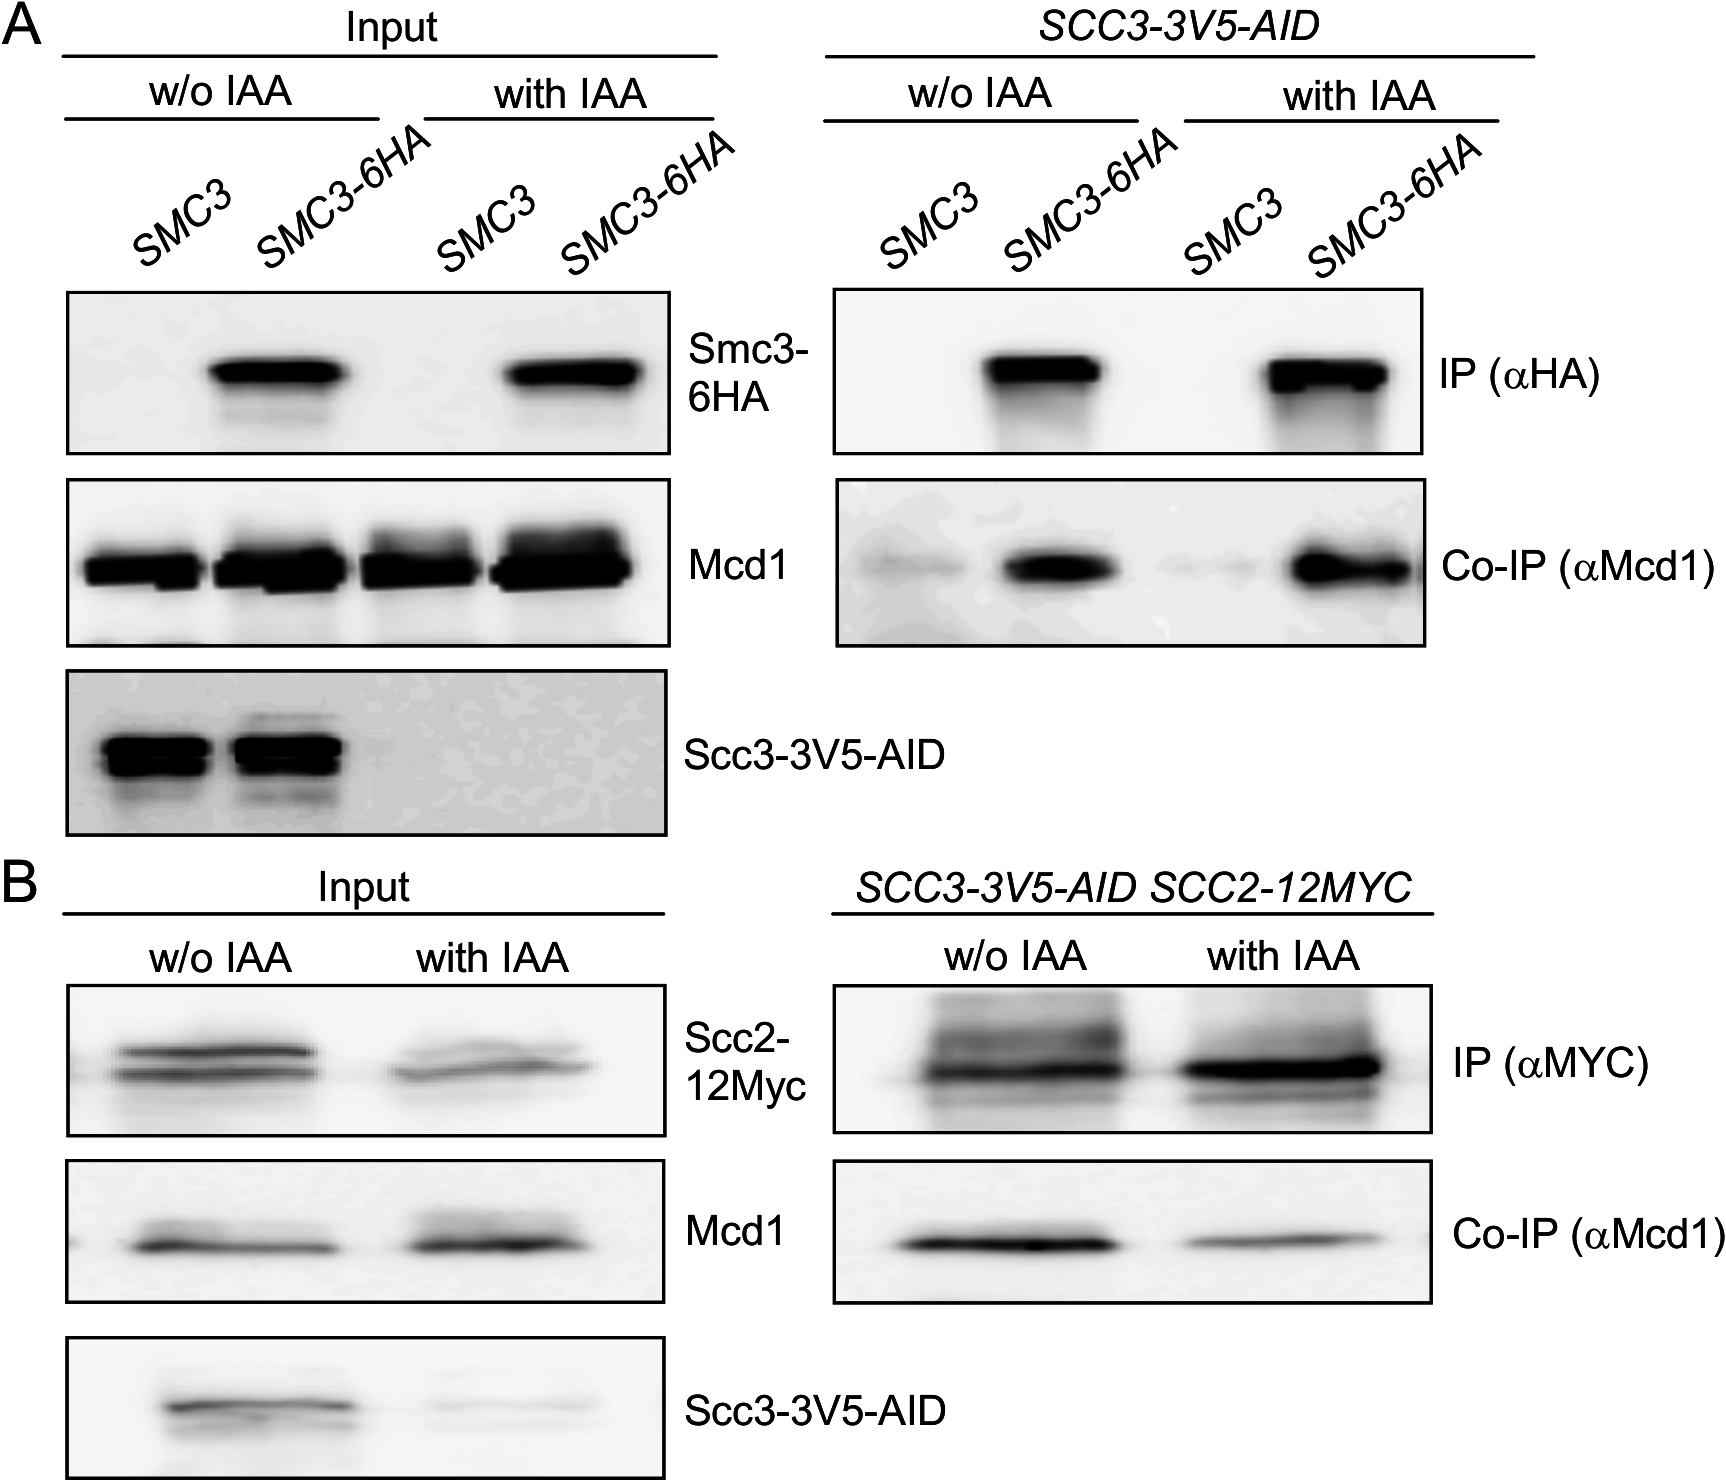 Scc3 does not affect the Smc3-Mcd1 interaction.